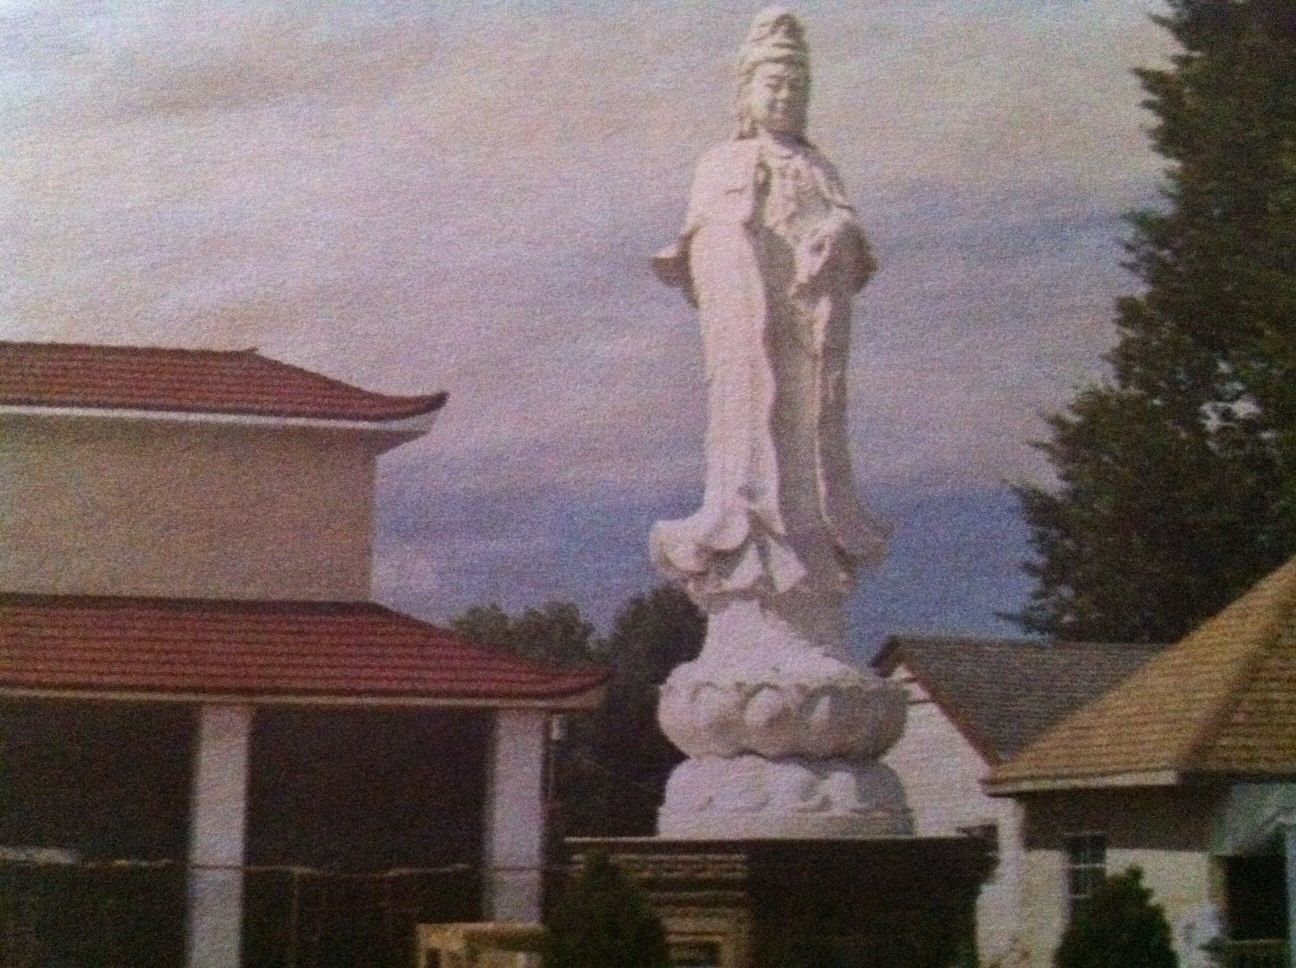 Craigslist Springfield Mo Exercise Bikes Muslims Build Buddhist Statue